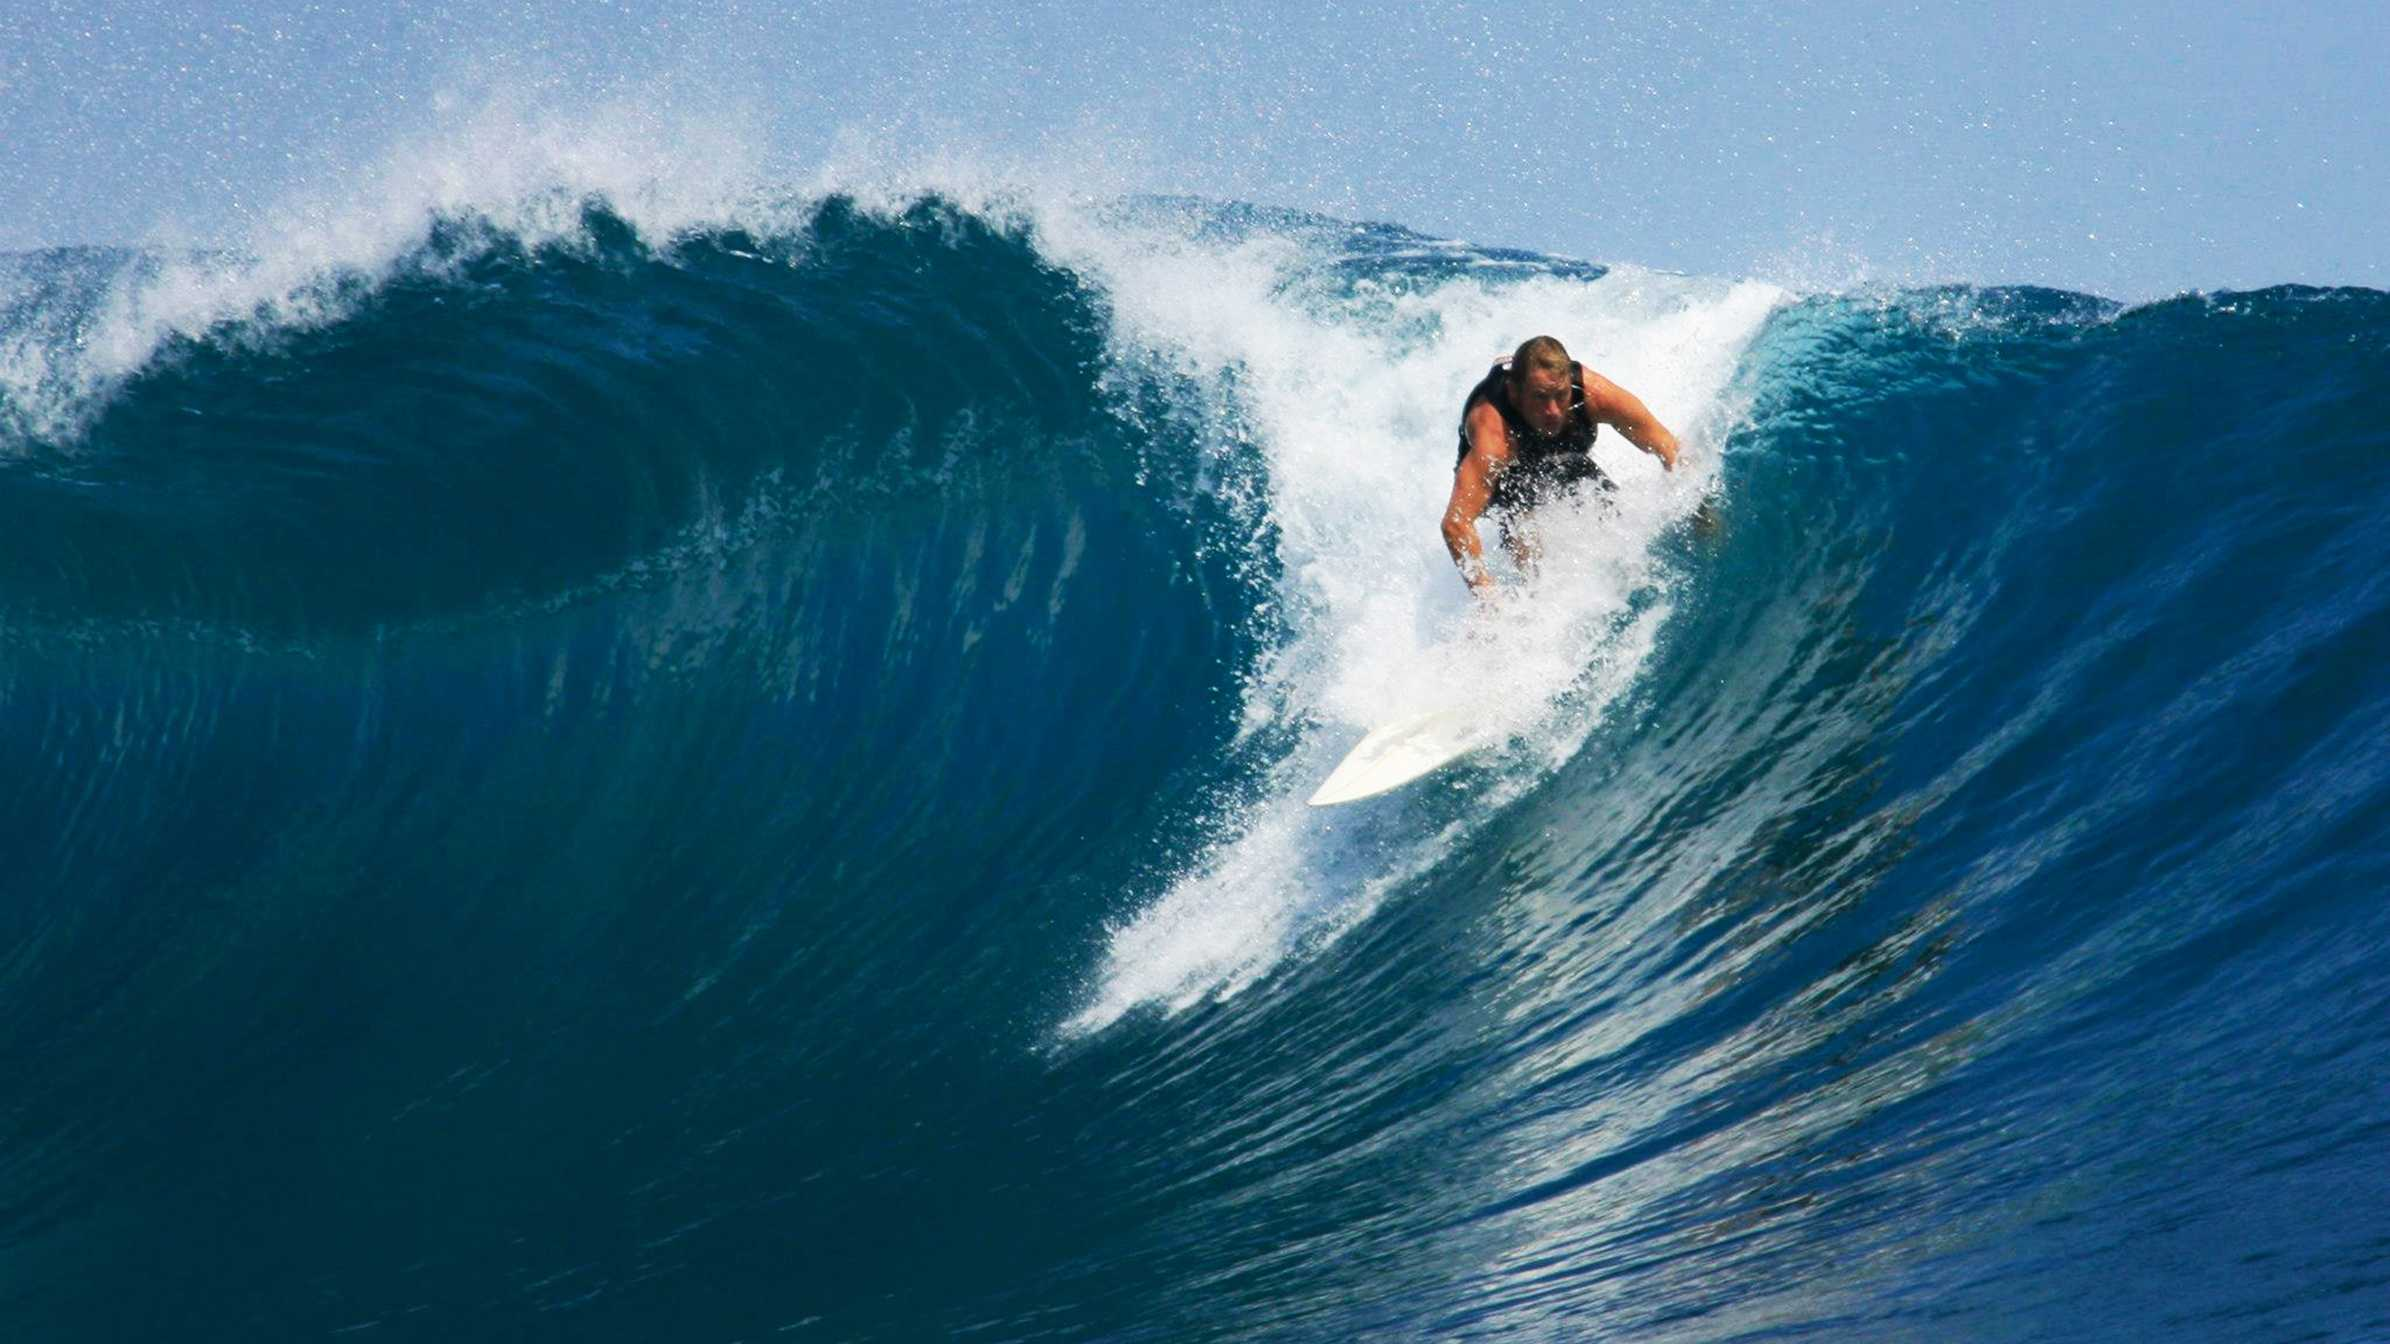 Dylan Greiner, 38, of Santa Cruz, is well known in the surfing community.